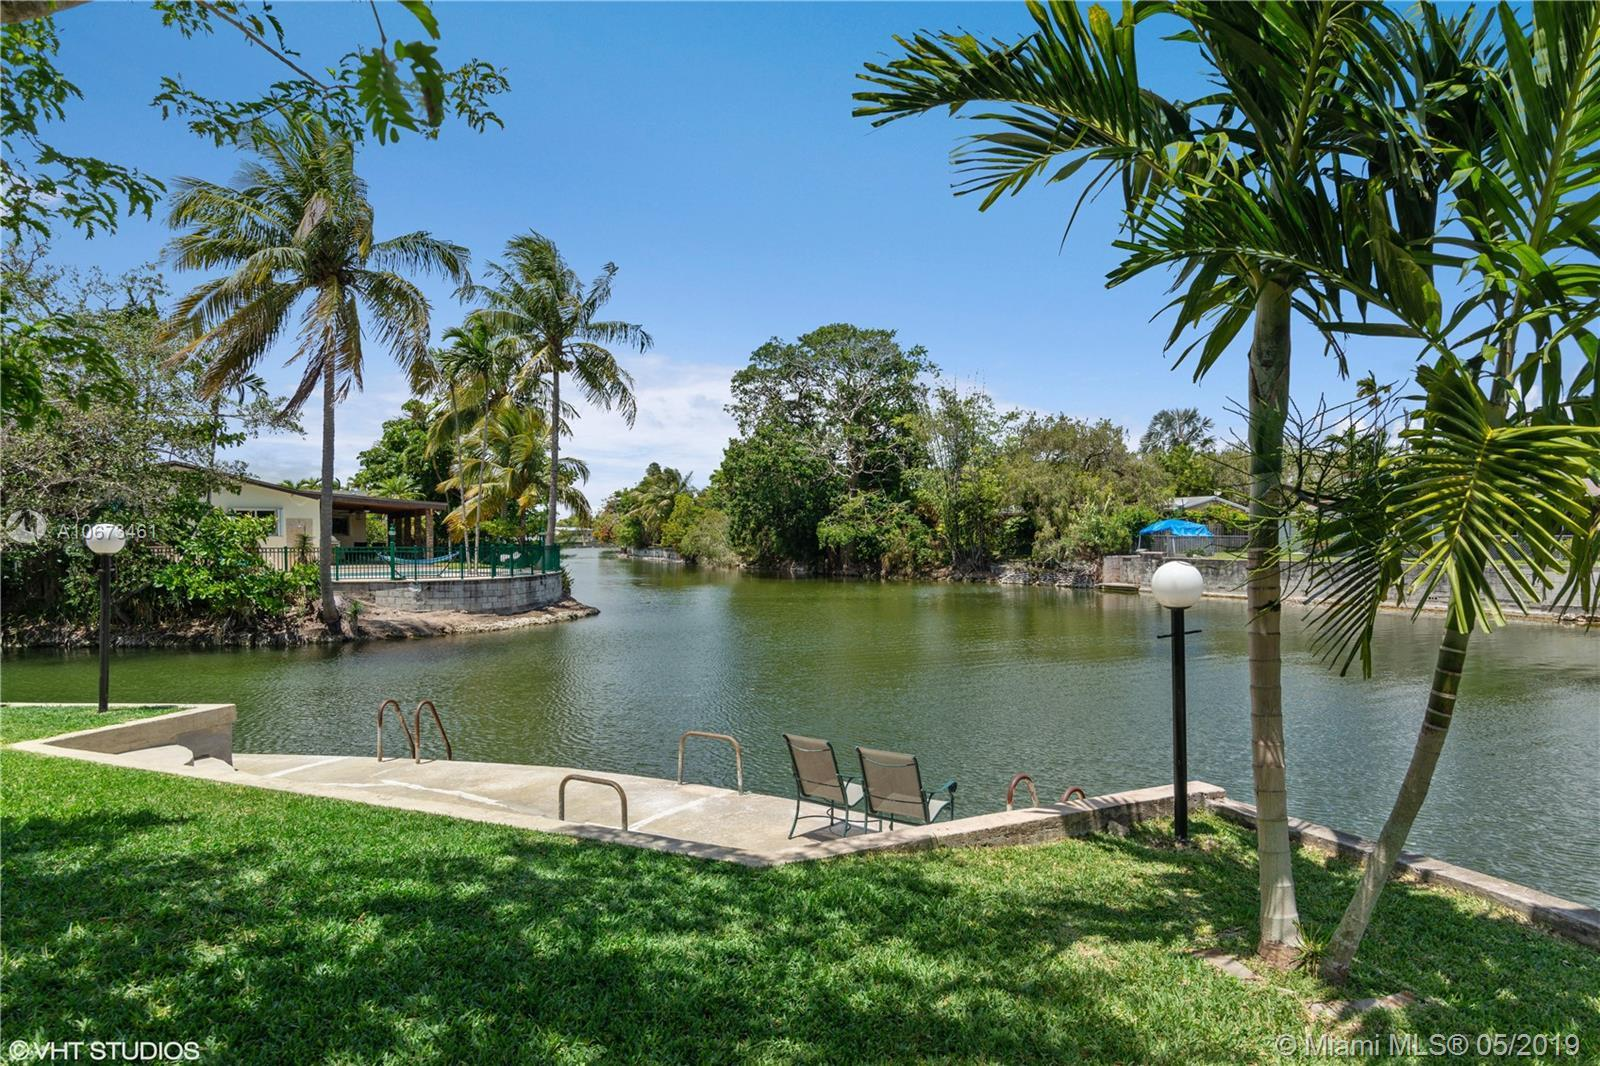 On the fabulous Twin Lakes, in the heart of South Miami, this very unique corner lakefront property